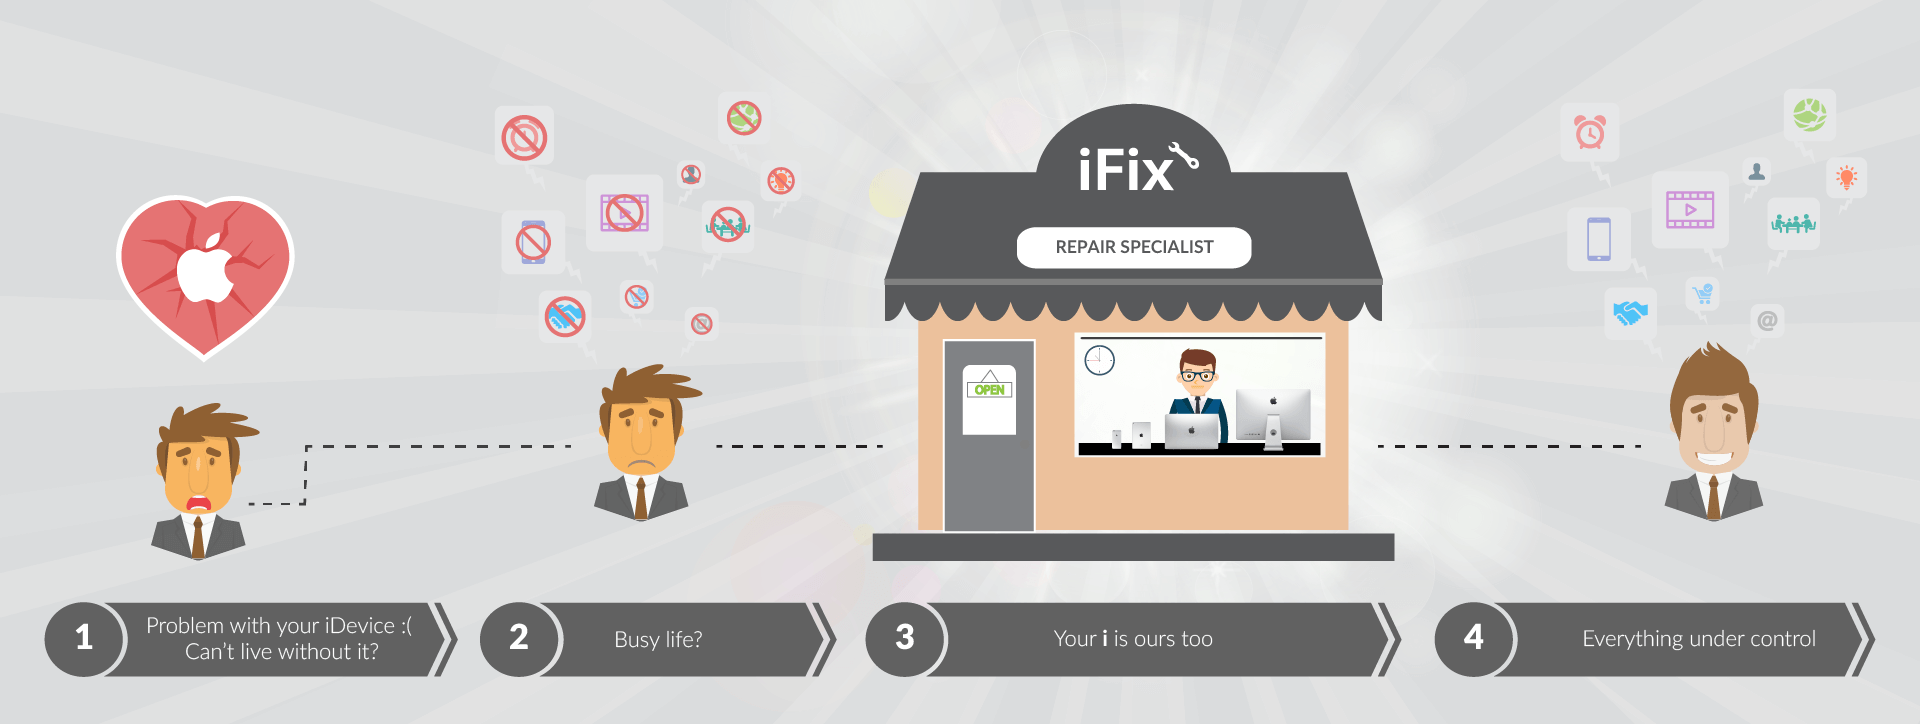 ***MISSING_TRANSLATION*** Conditii de service - iFix